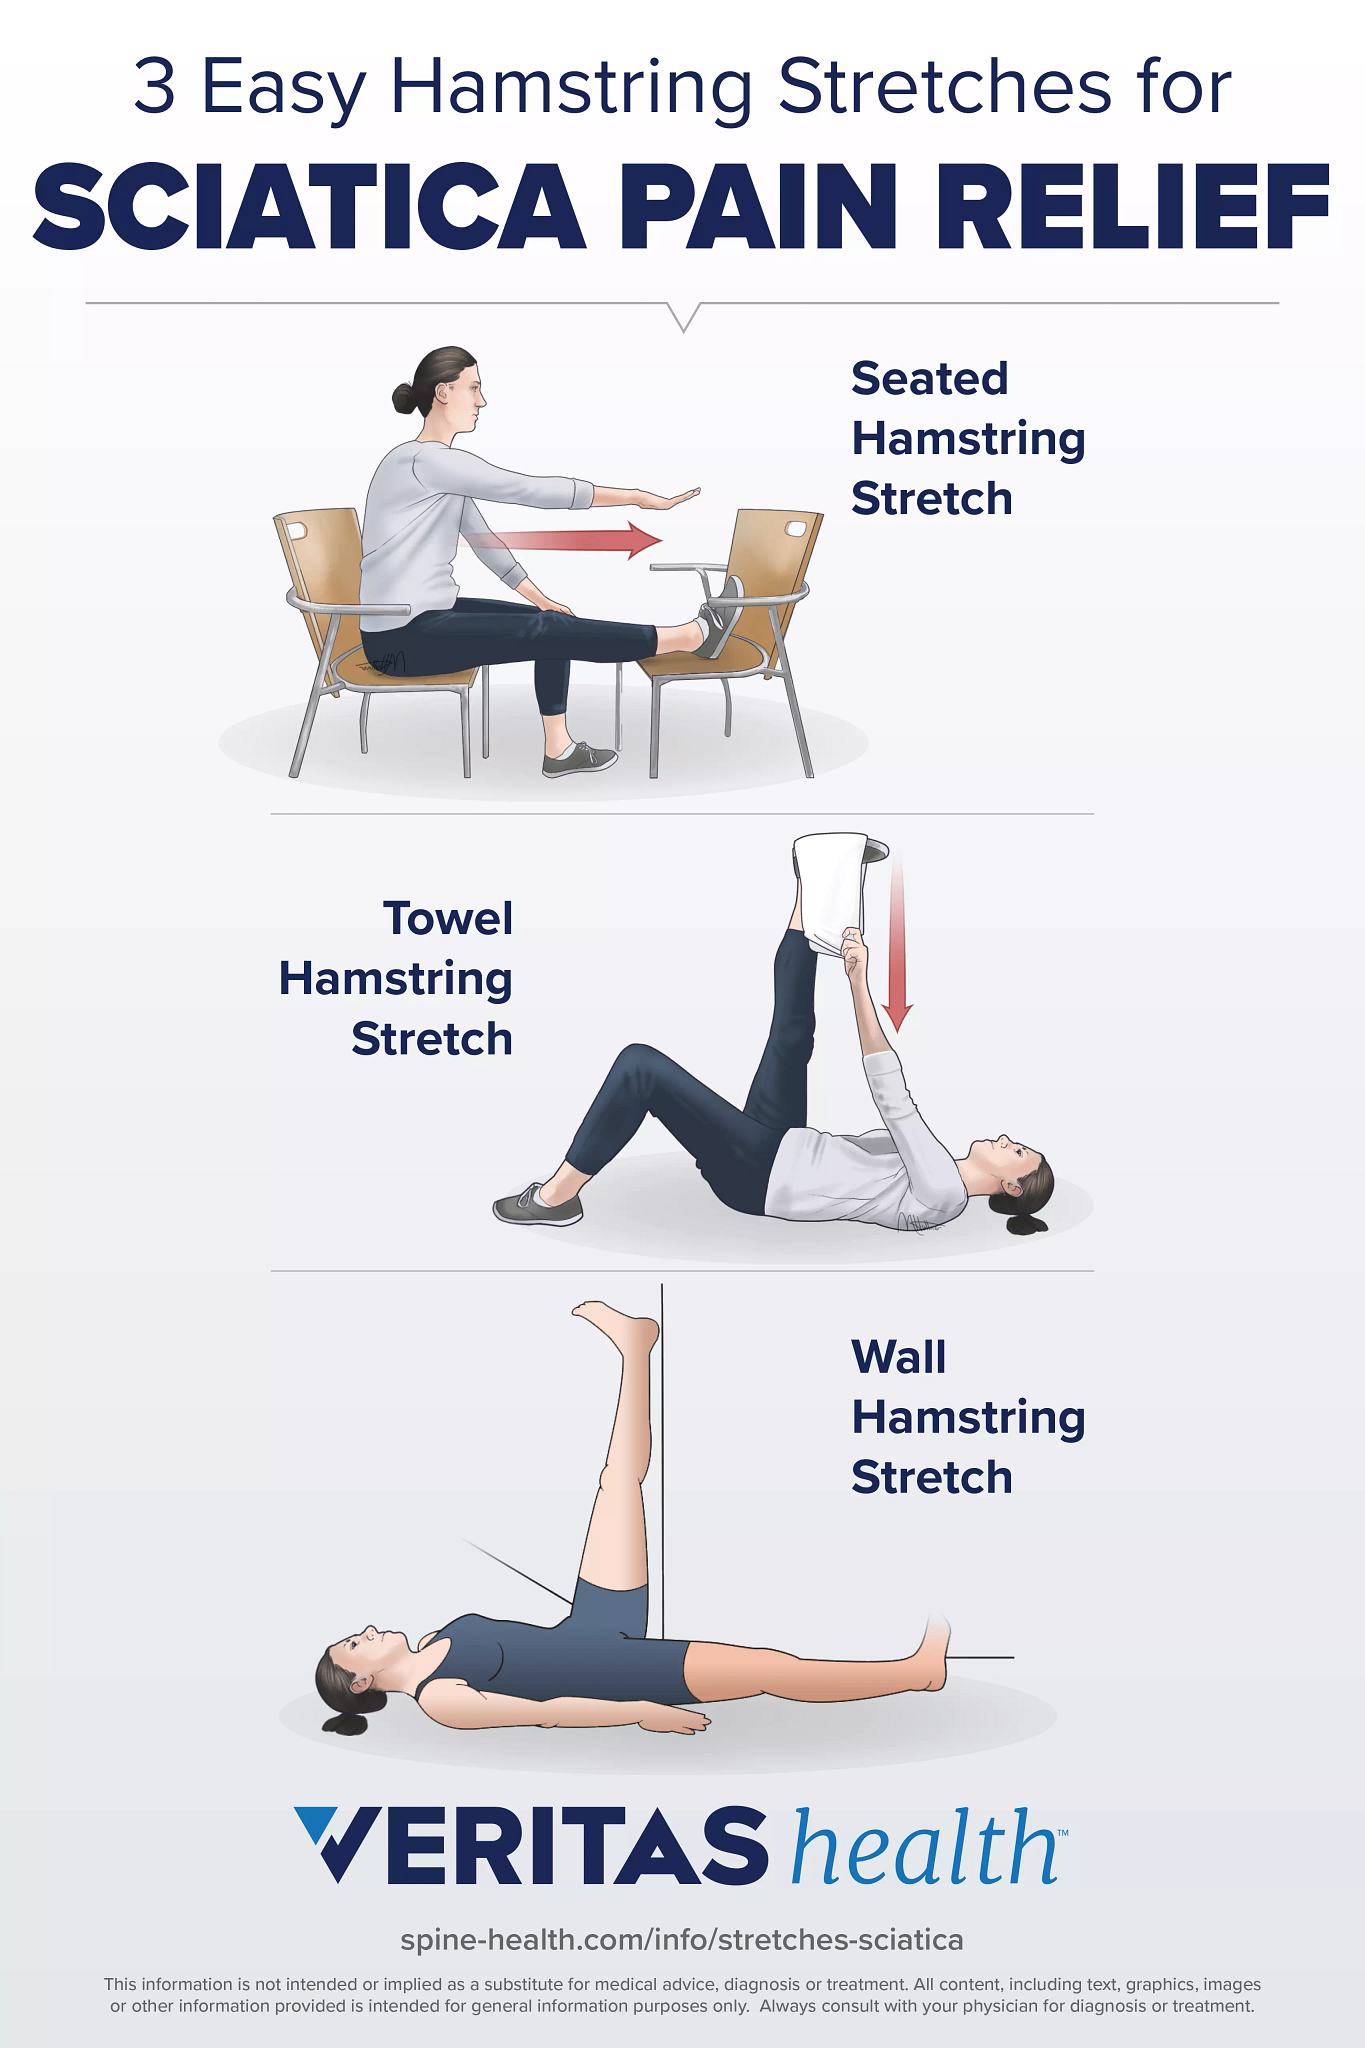 3 Easy Hamstring Stretches for Sciatica Pain Relief